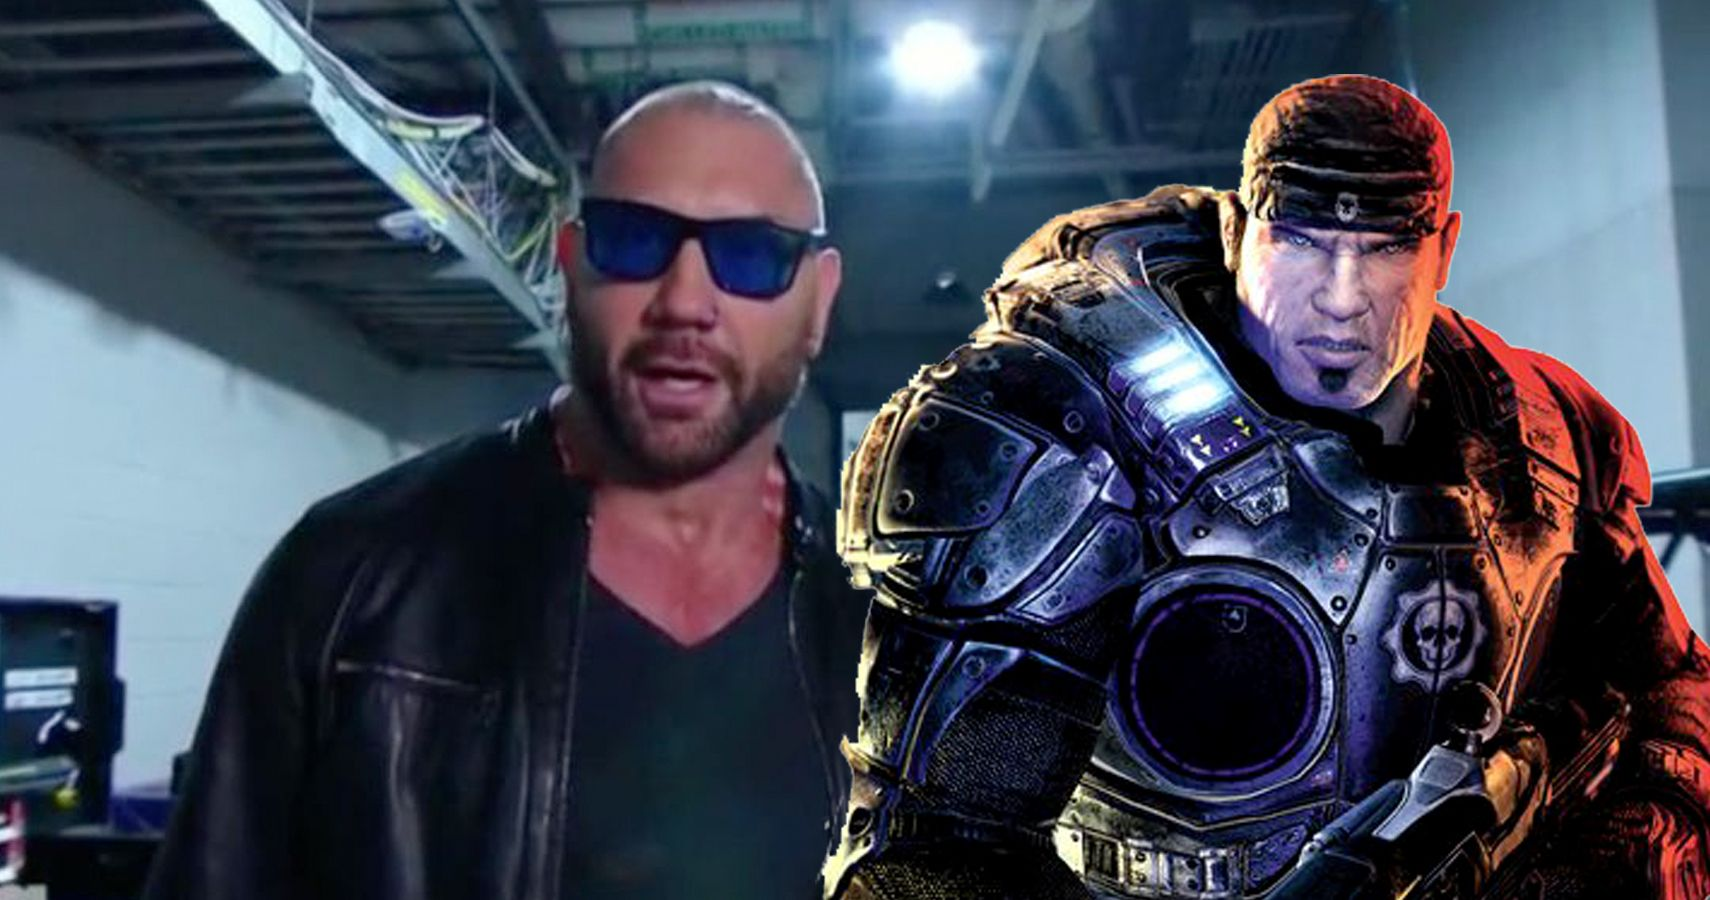 Dave Bautista Is Down To Play Marcus Fenix In Gears Of War Movie